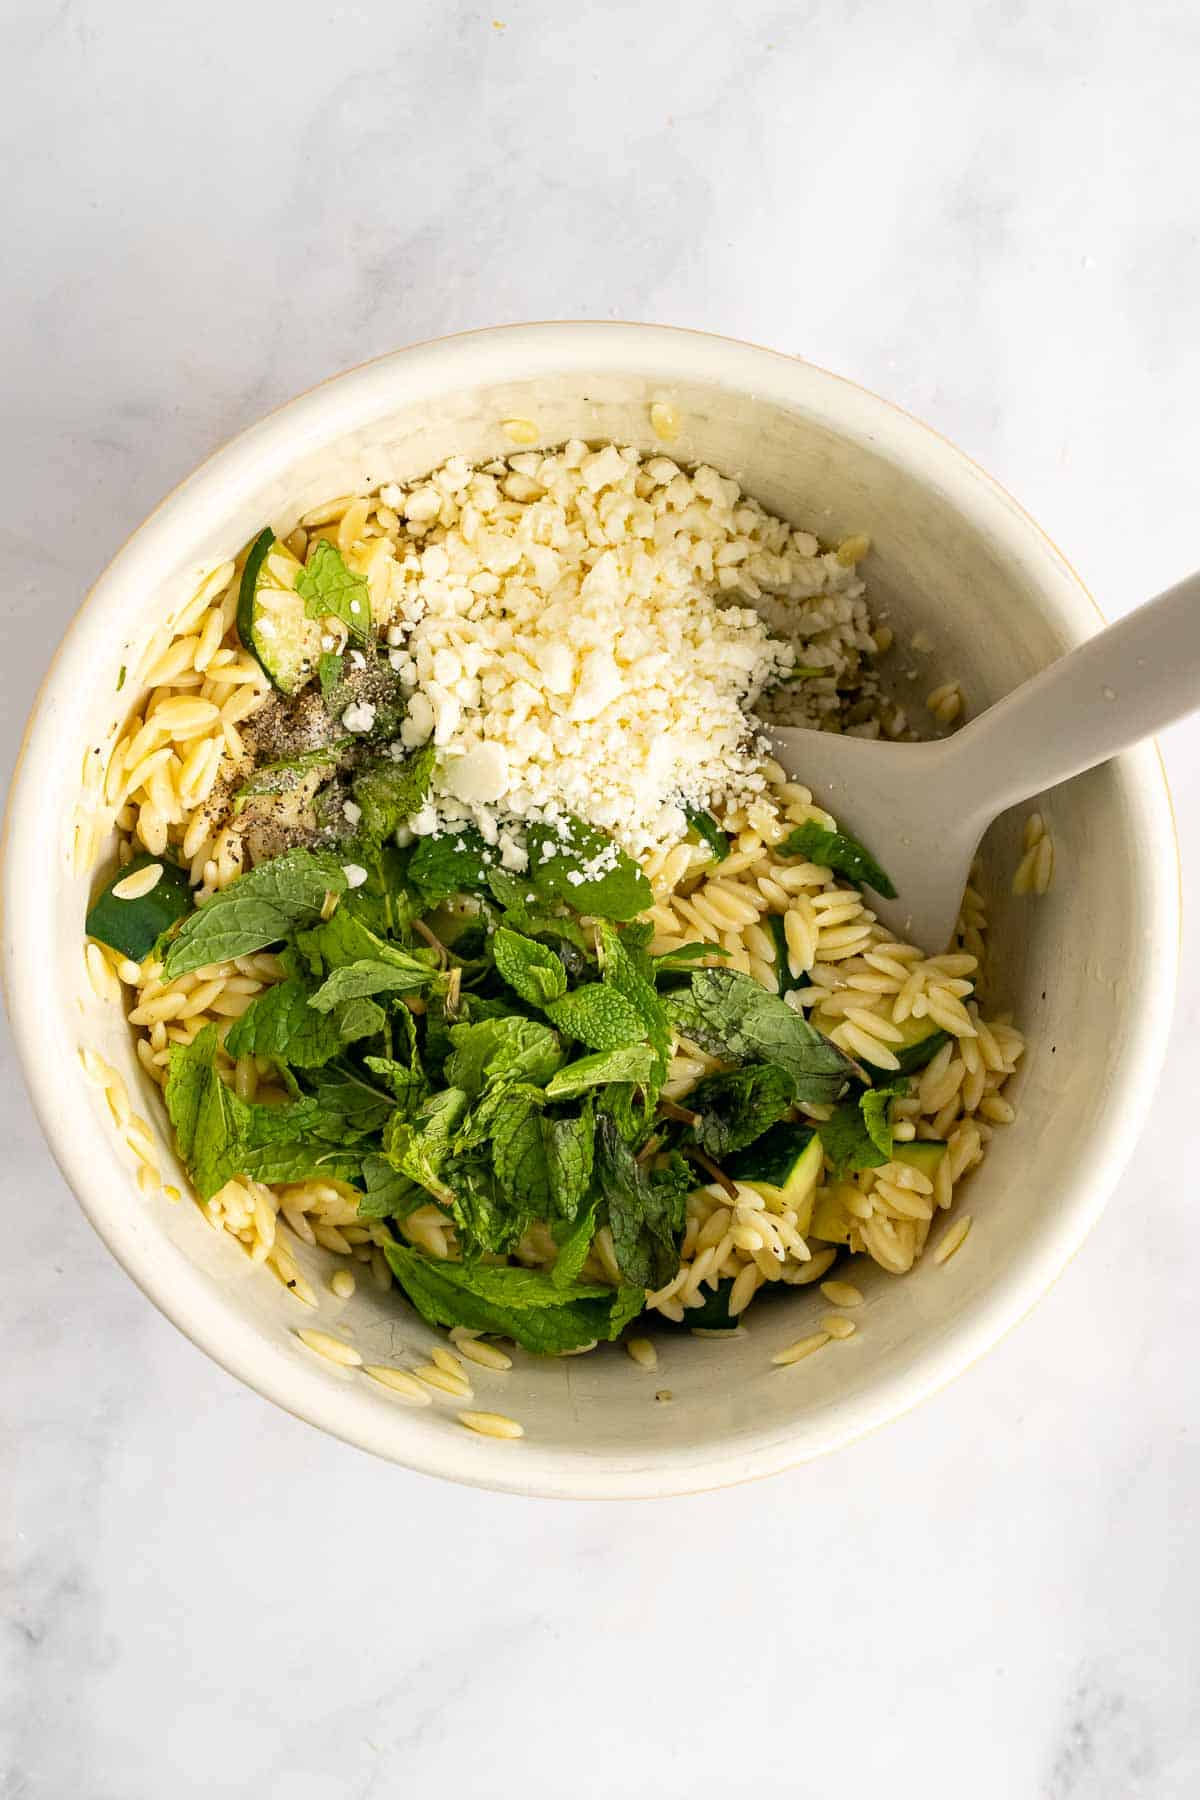 Bowl of orzo zucchini salad with faeta and mint on top